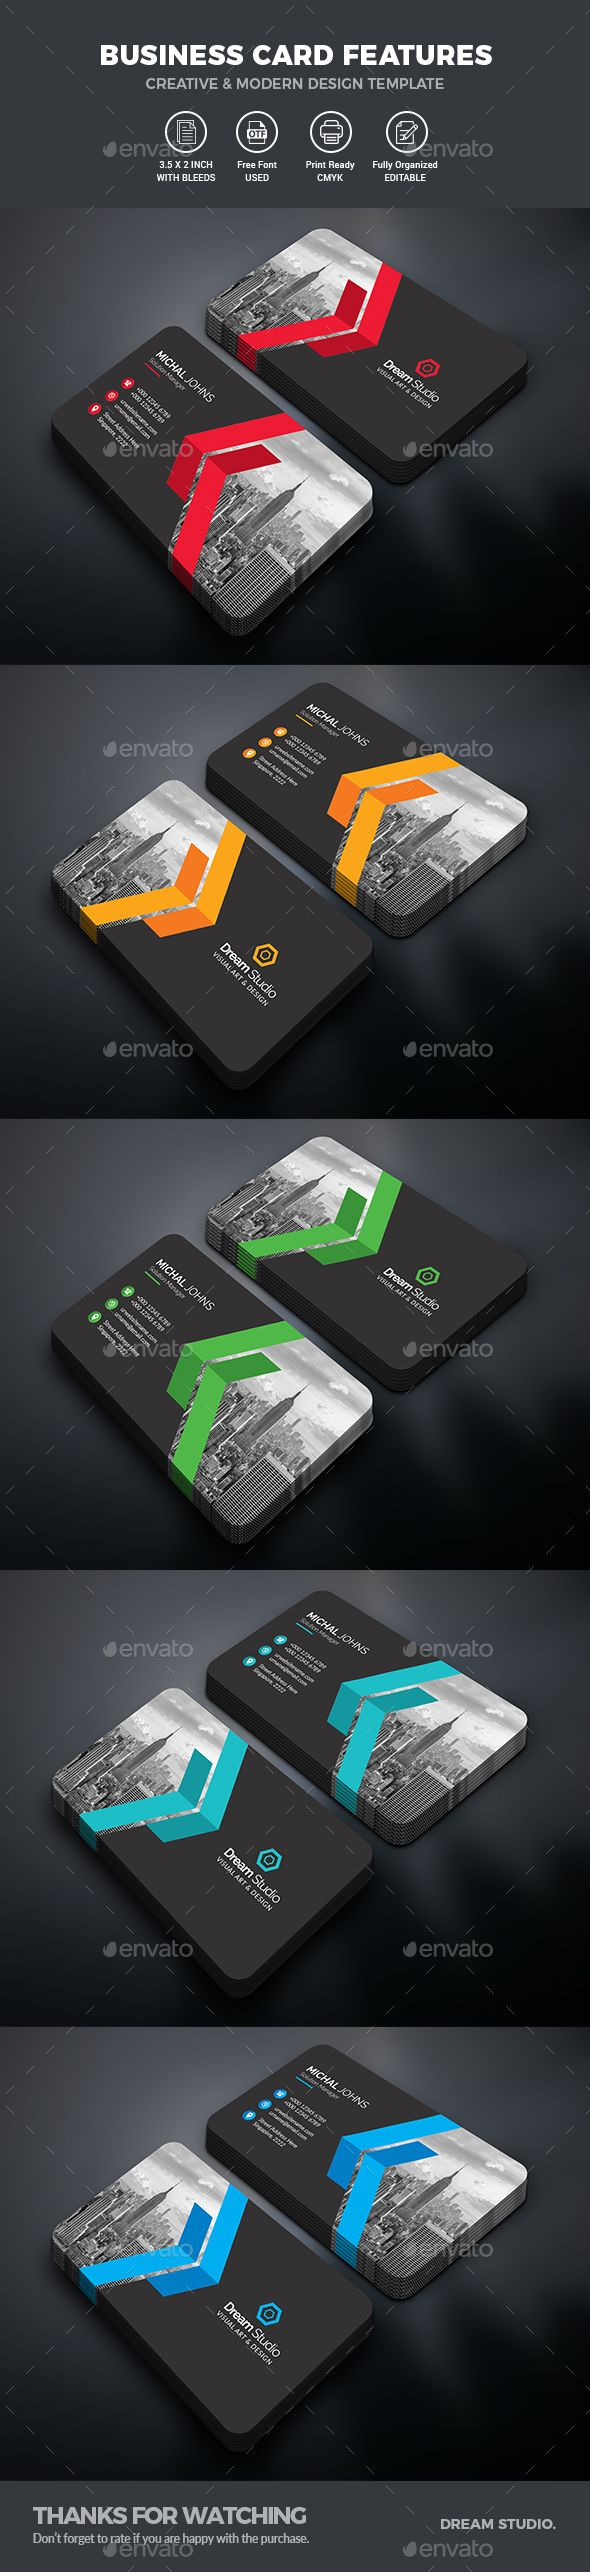 Business card business cards business and print templates reheart